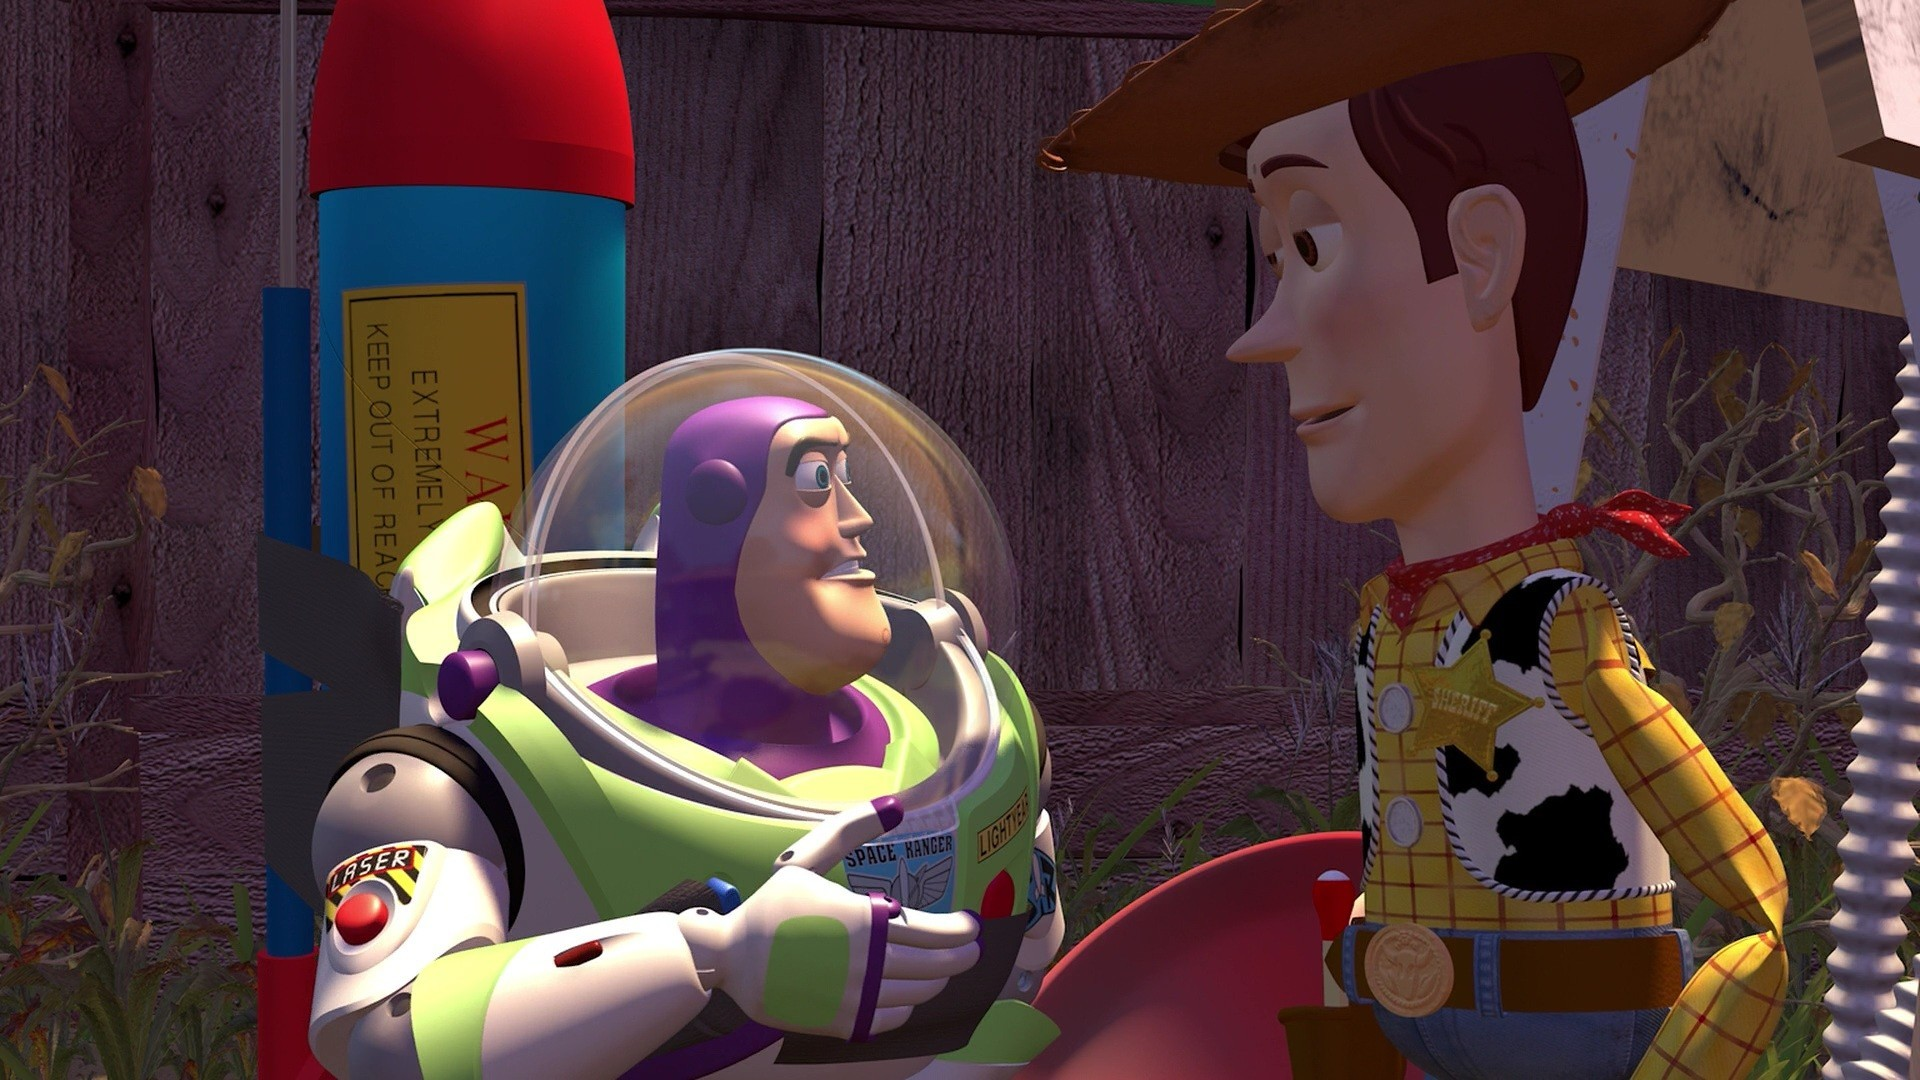 5. Toy Story (1995)